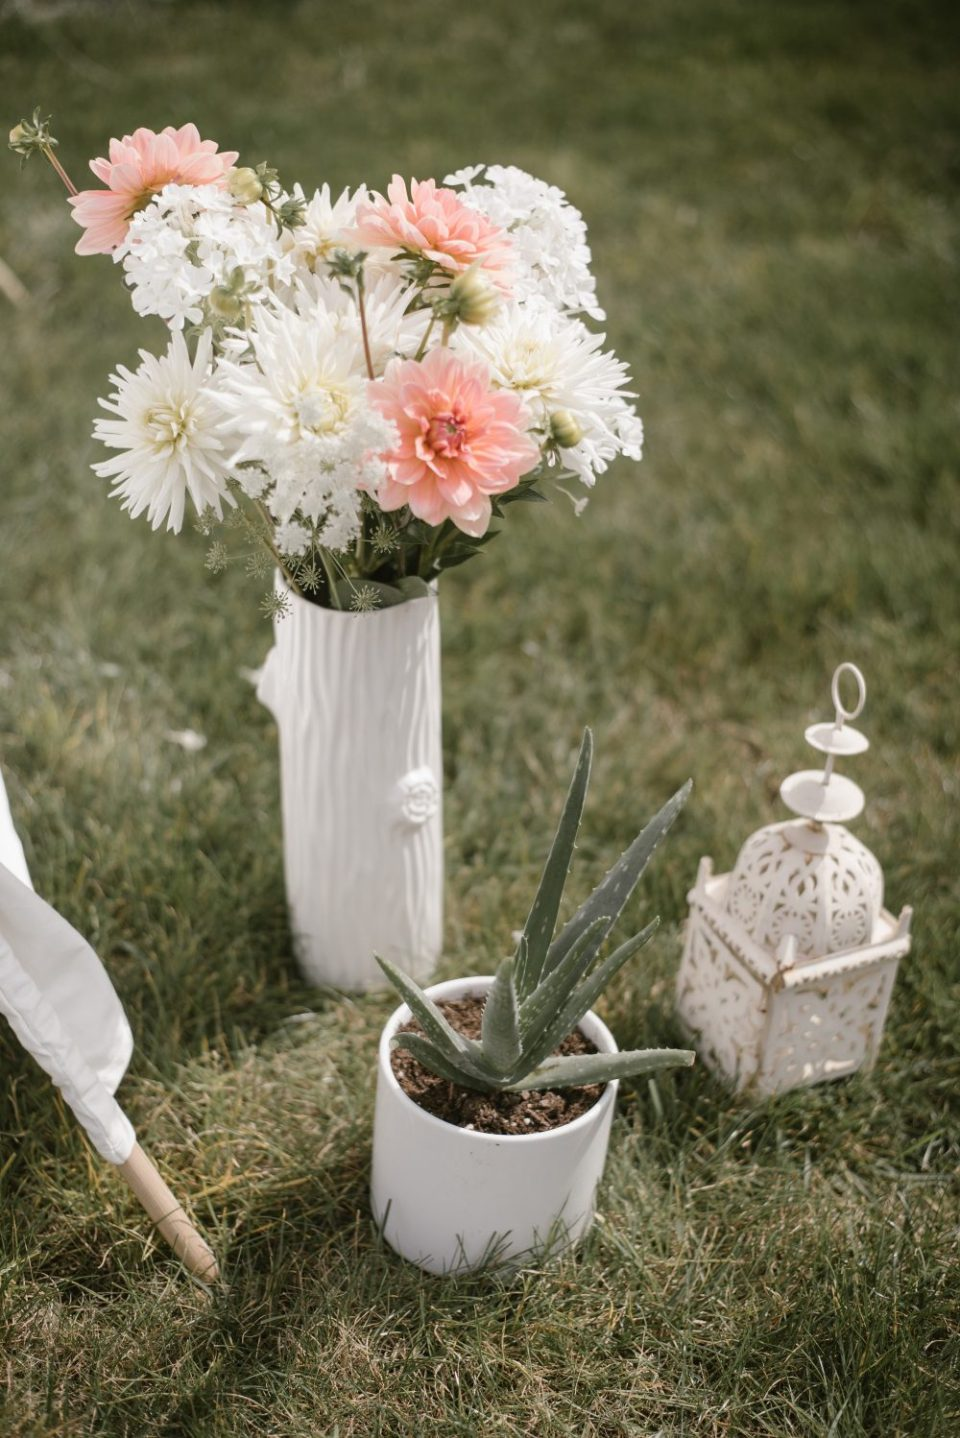 Flower Arrangements for backyard boho meet the baby shower | White Boho Baby Shower